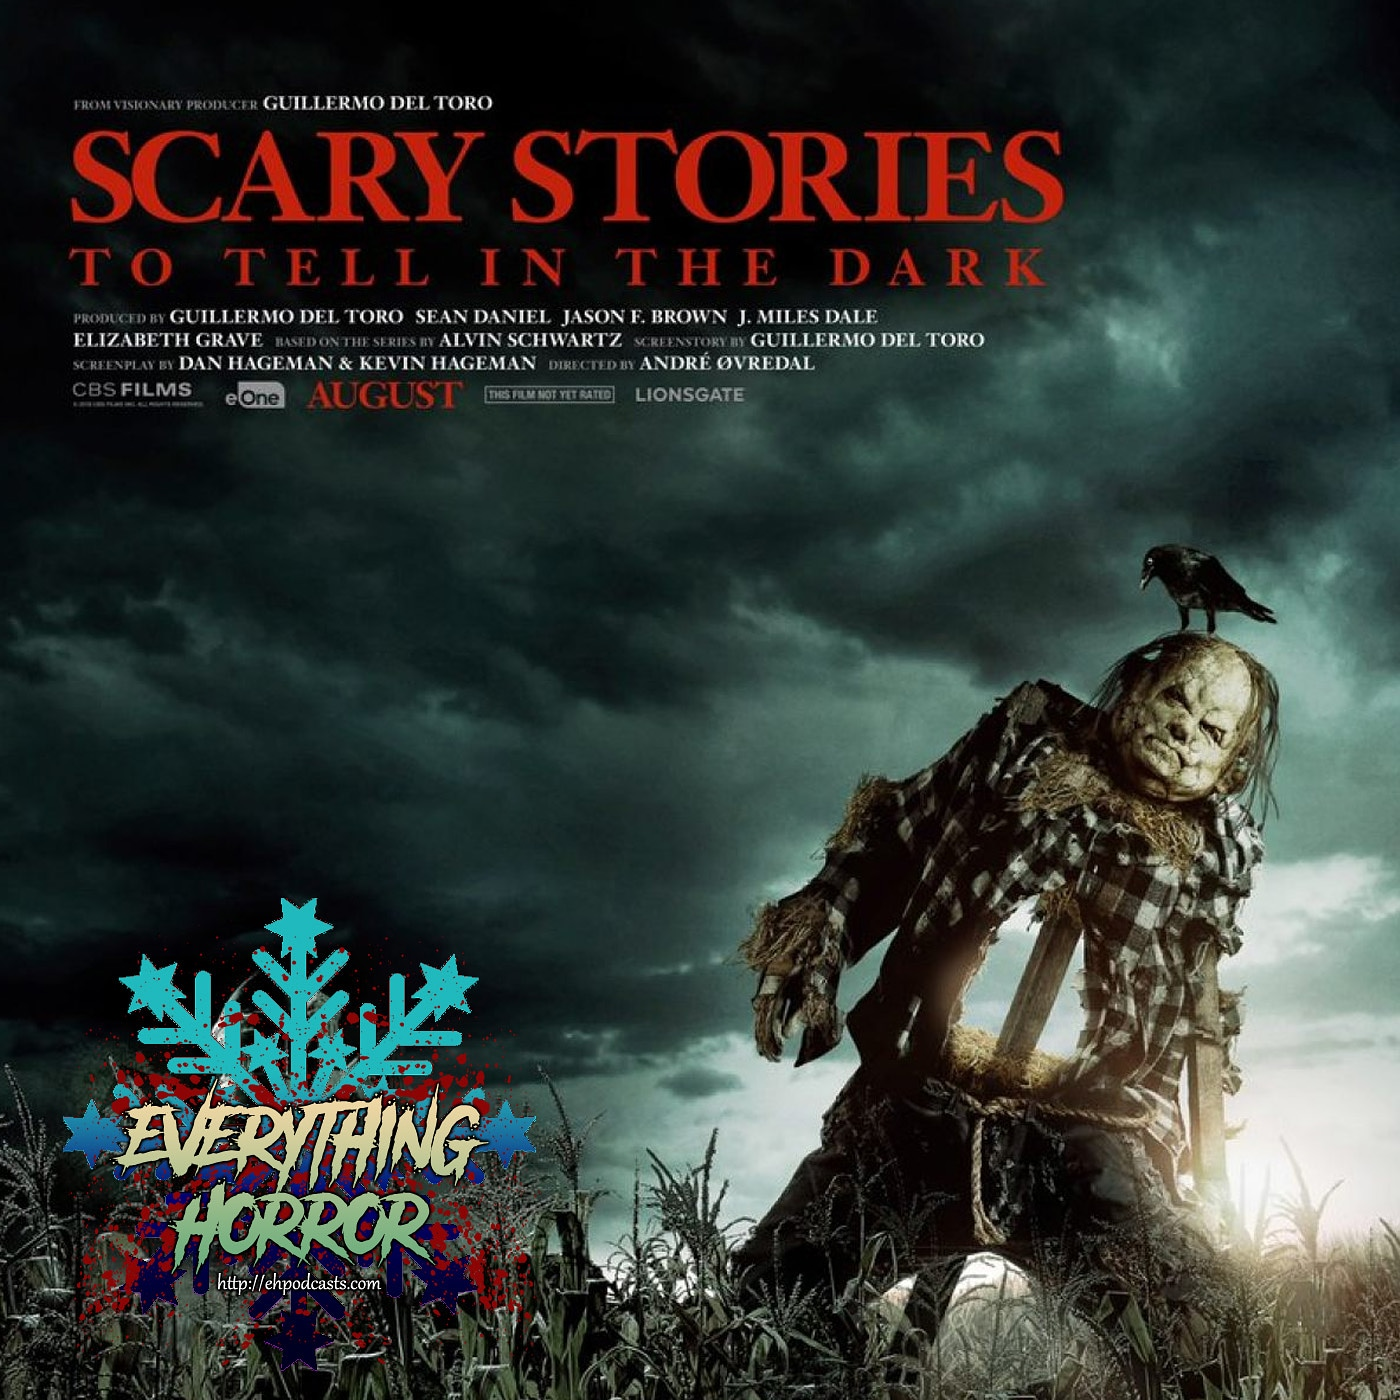 Scary Stories To Tell In The Dark (Movie)